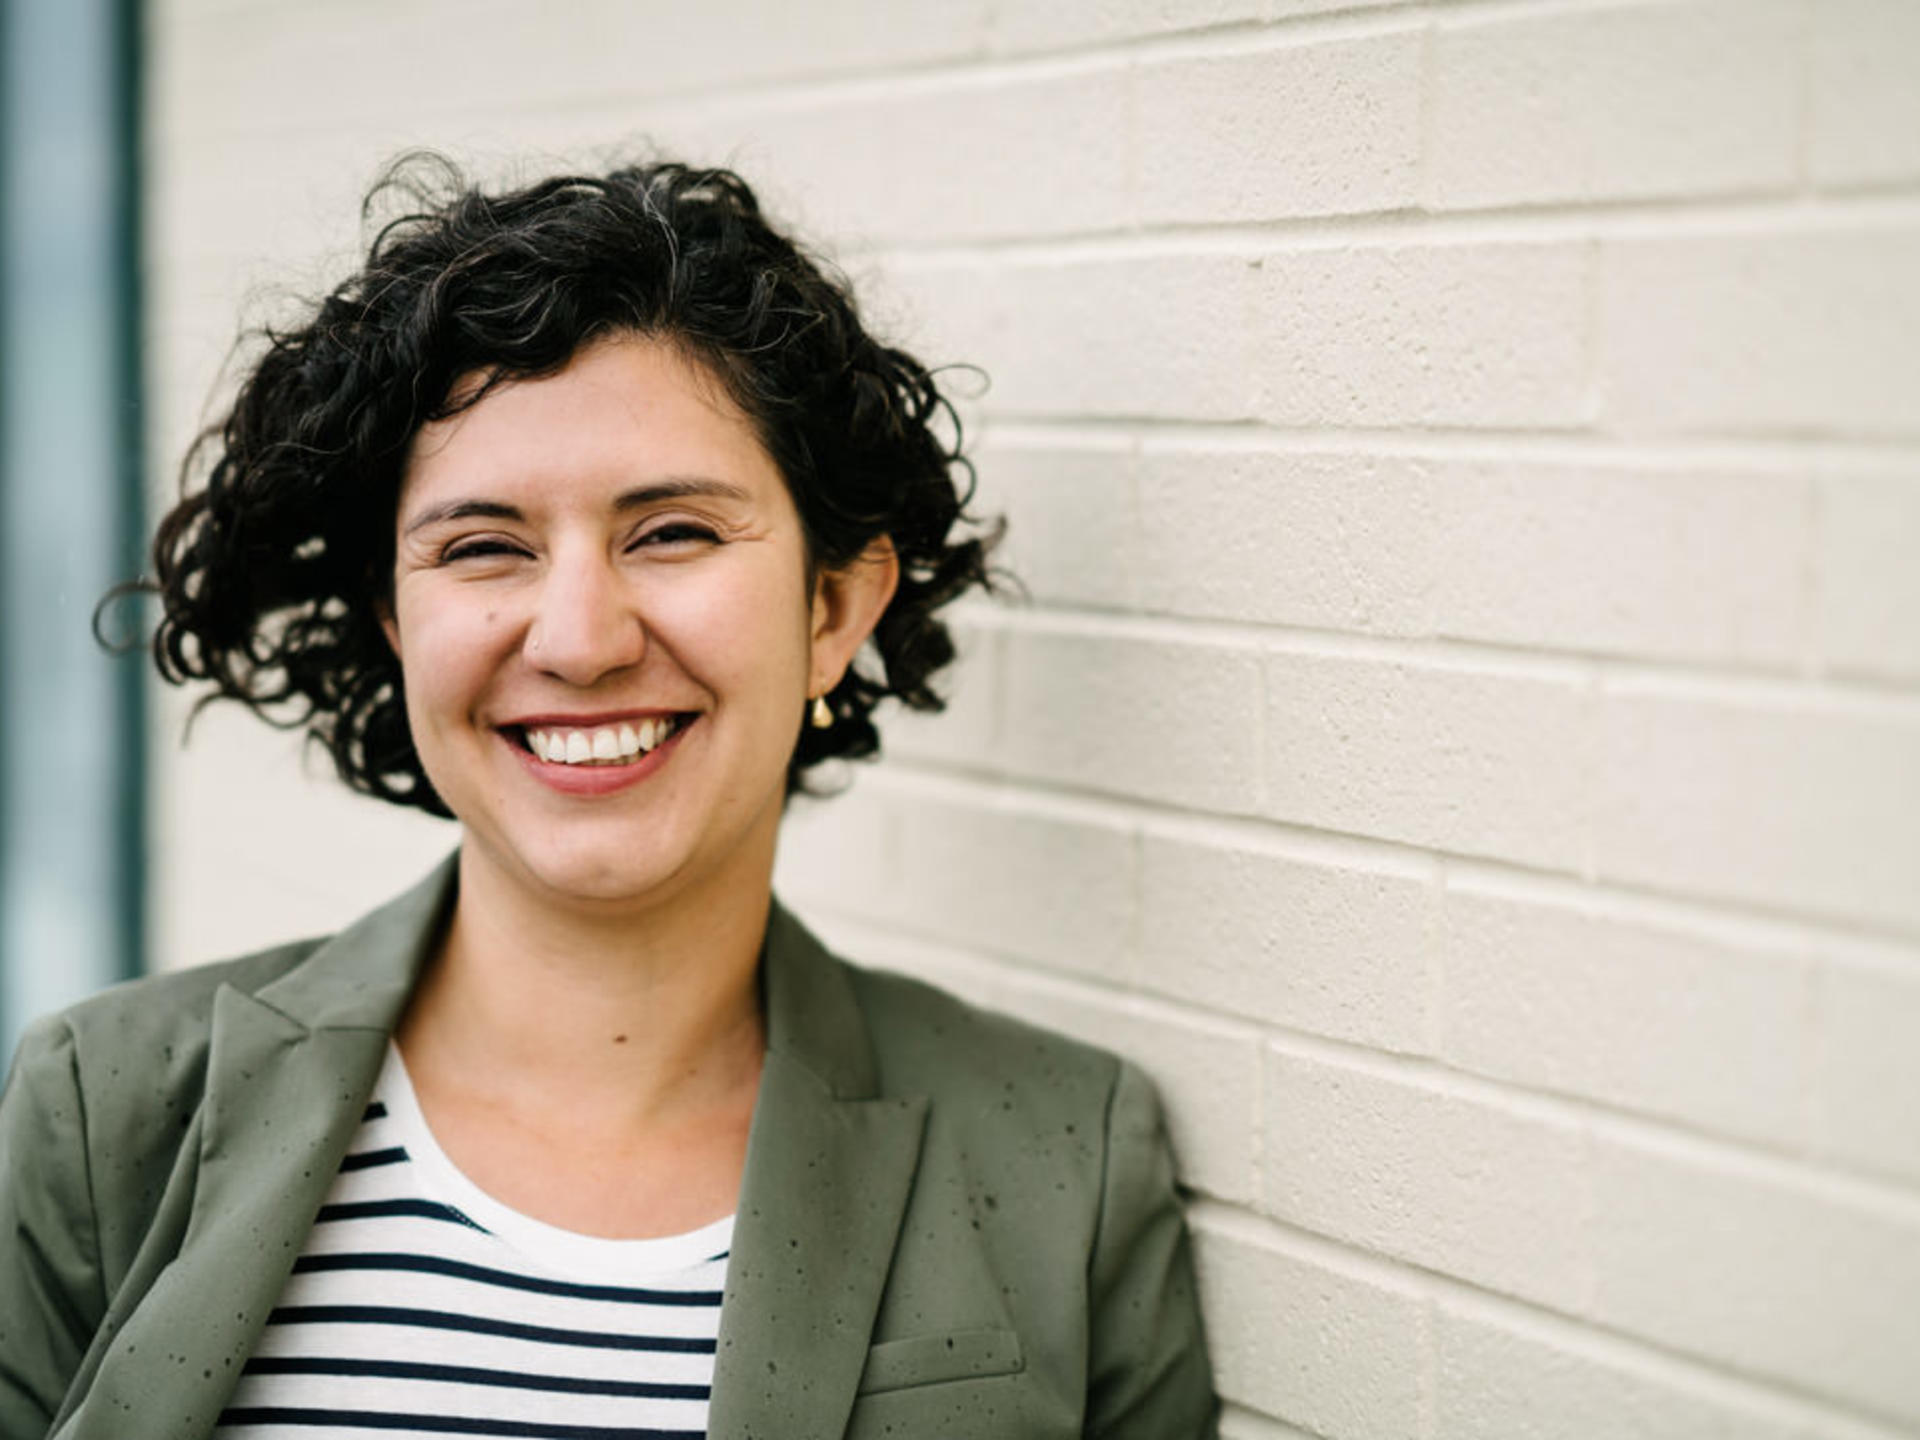 Natalie El-Diery joined the IRC in Salt Lake City in 2010. In April 2019, she accepted the executive director role bringing over 15 years of nonprofit administration experience with her.  Photo: Austin Diamond